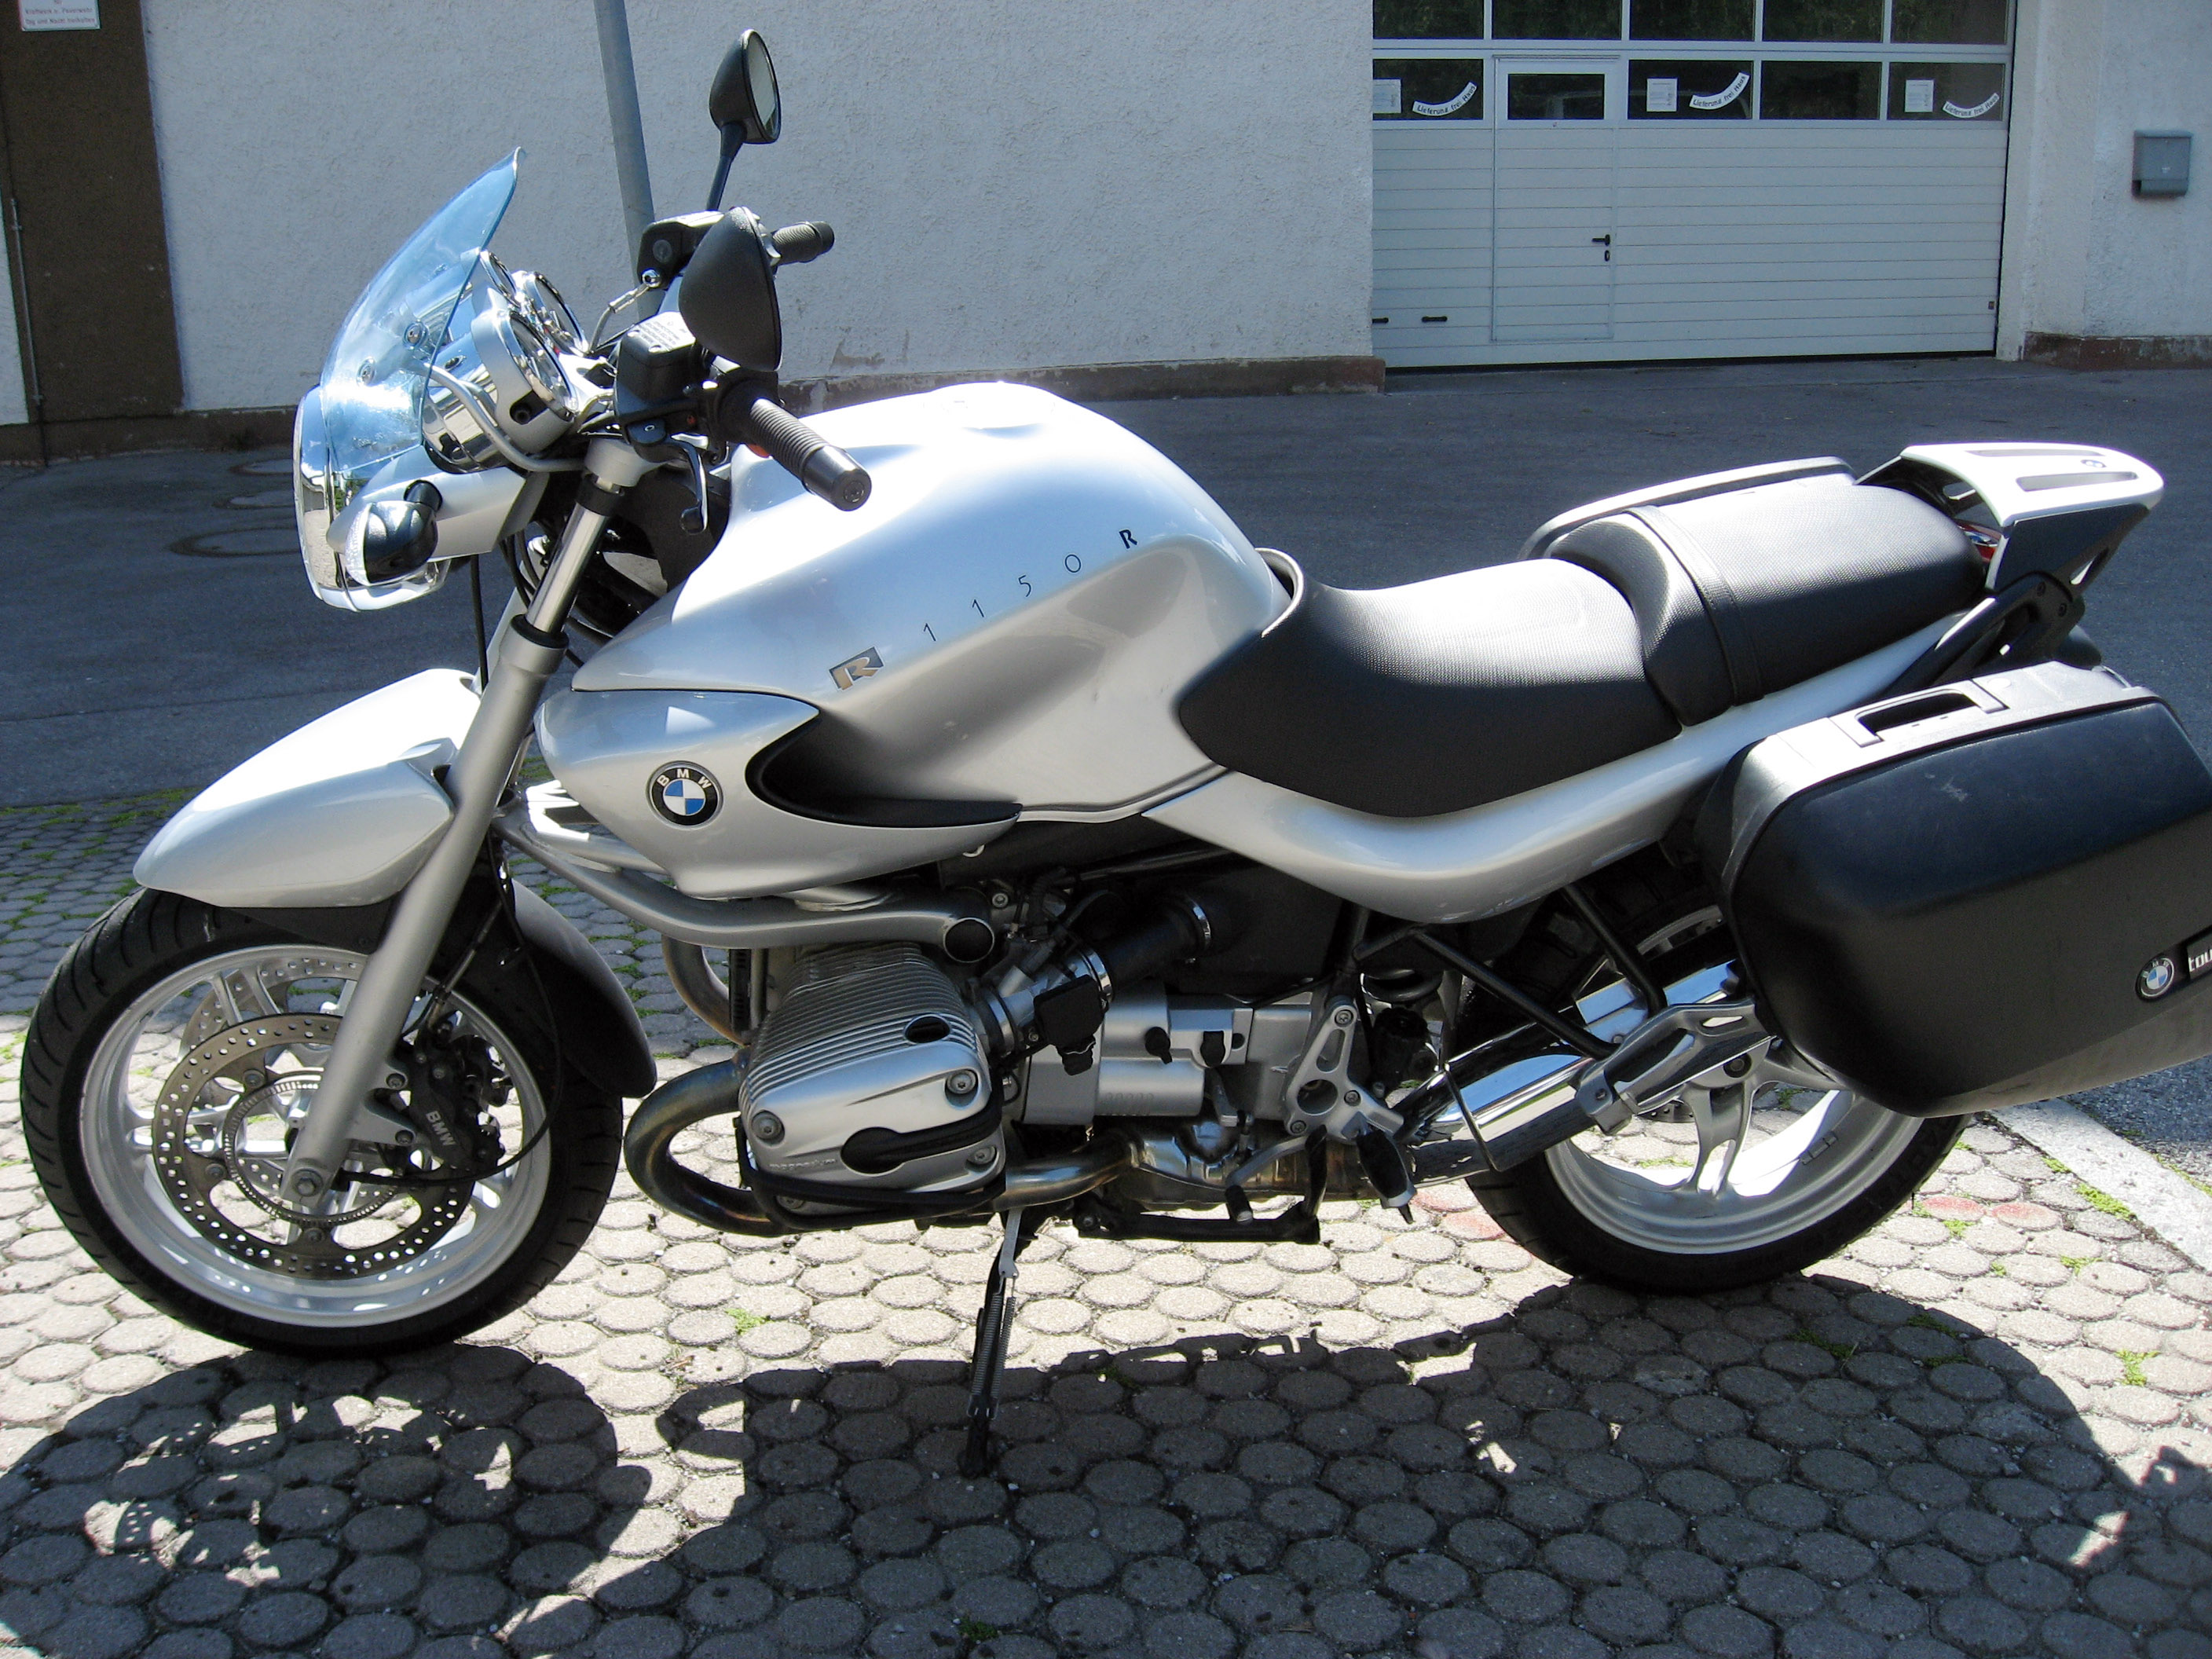 BMW R1150RS 2002 images #7021